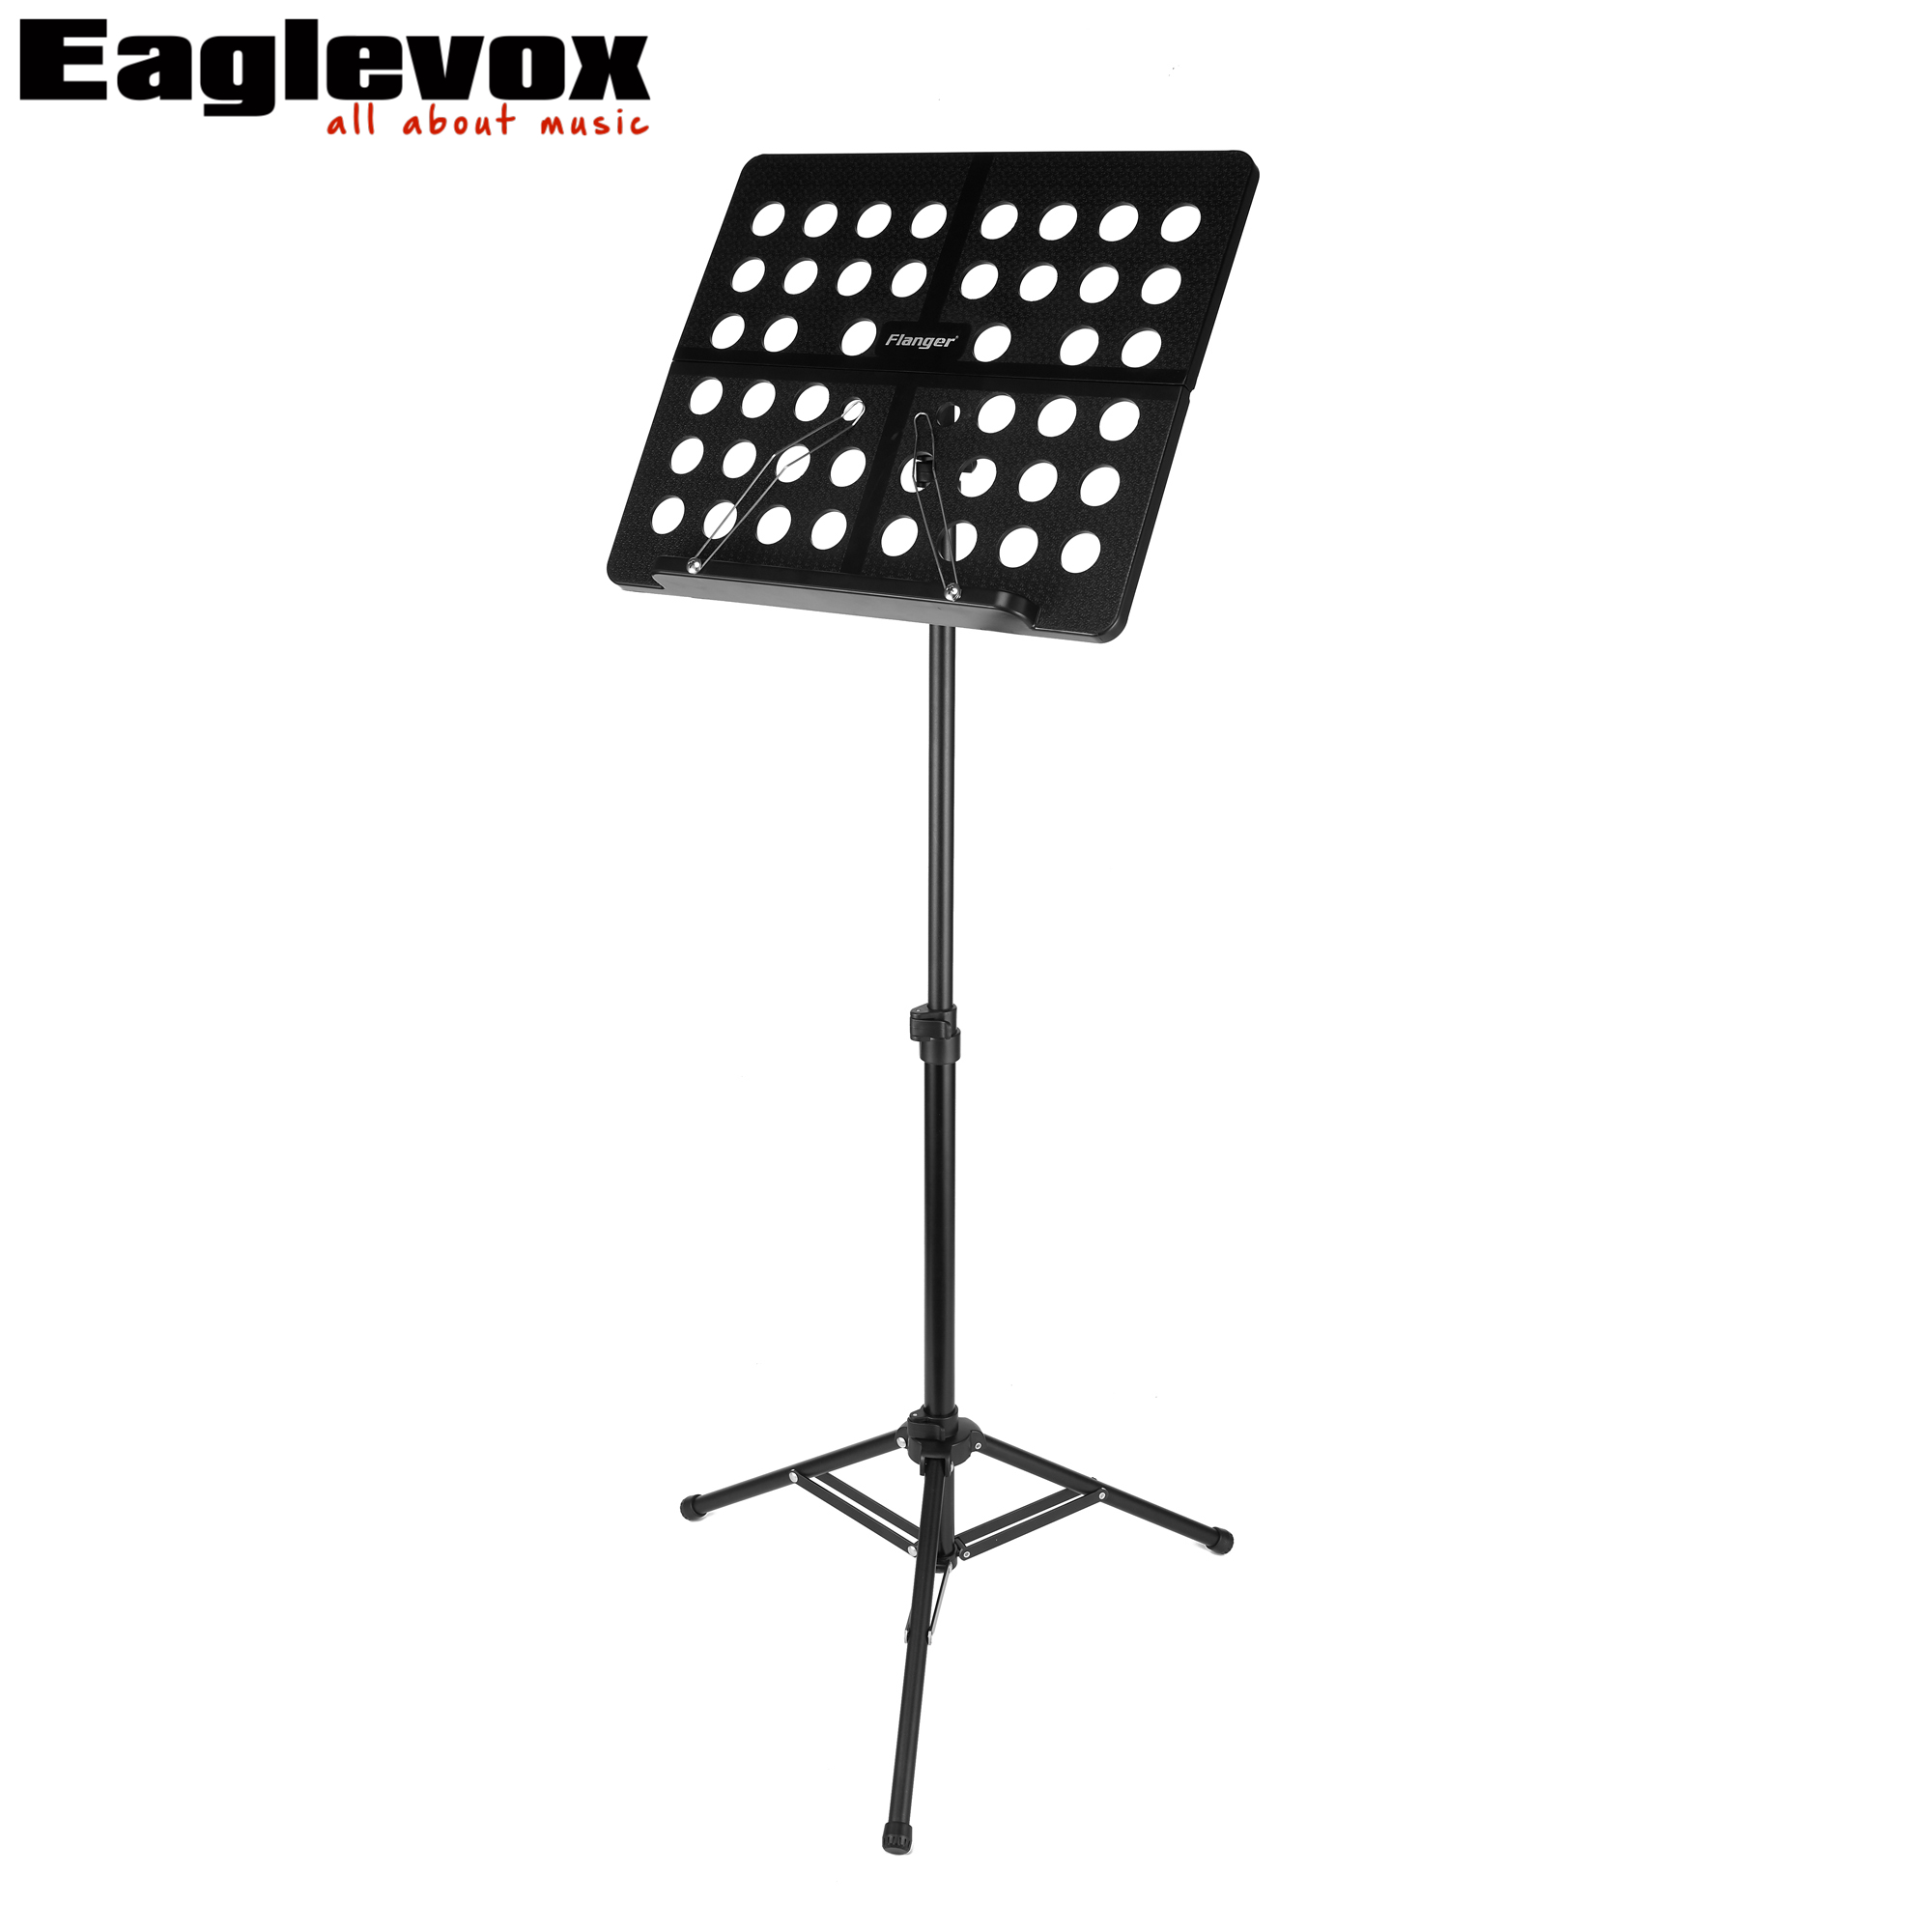 Folding Adjustable Black Music Stand Portable Metal Holder with Carrying Pad Bag for Sheet Music 70-145 cm Adjustable Height colourful sheet folding music stand metal tripod stand holder with soft case with carrying bag free shipping wholesales